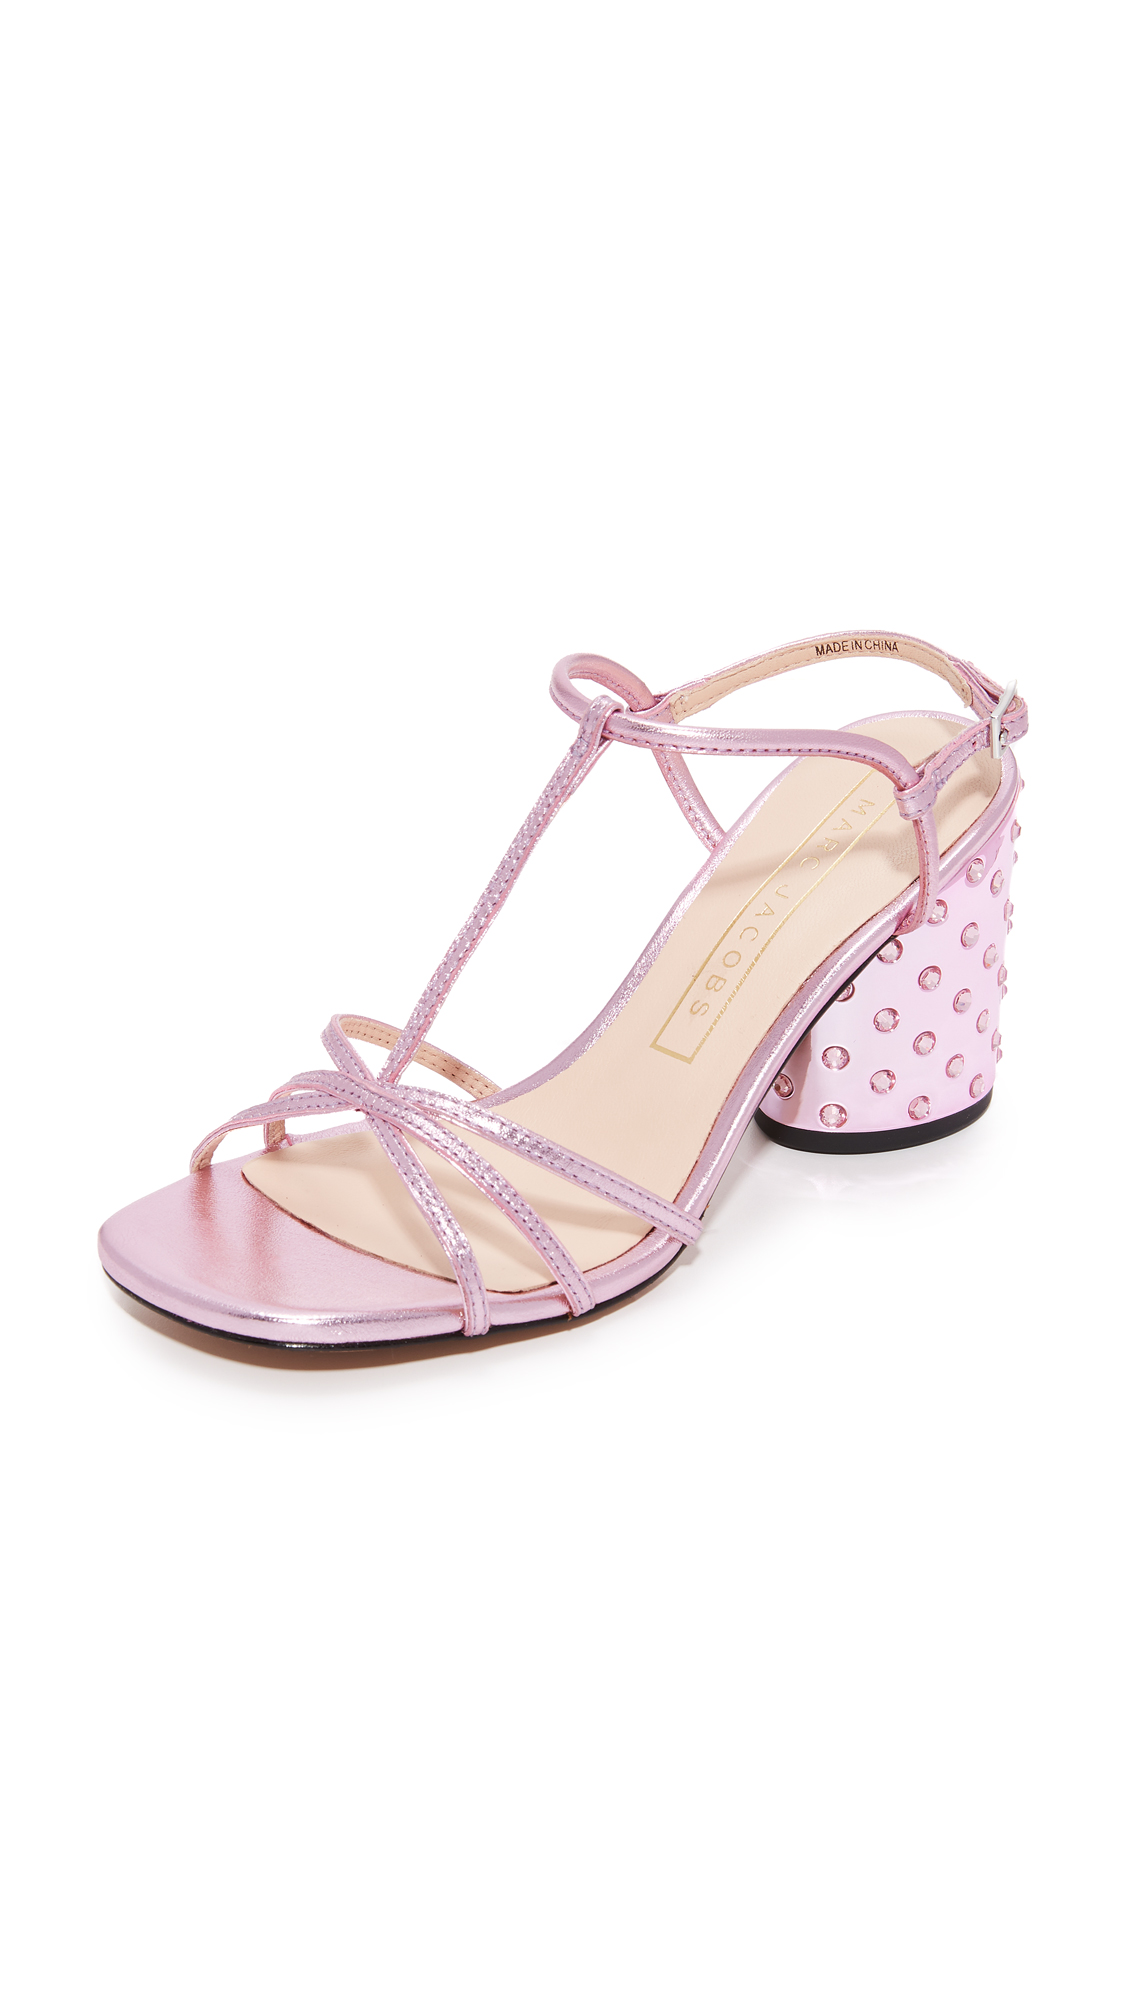 Marc Jacobs Sheena T-Strap Sandals - Pink